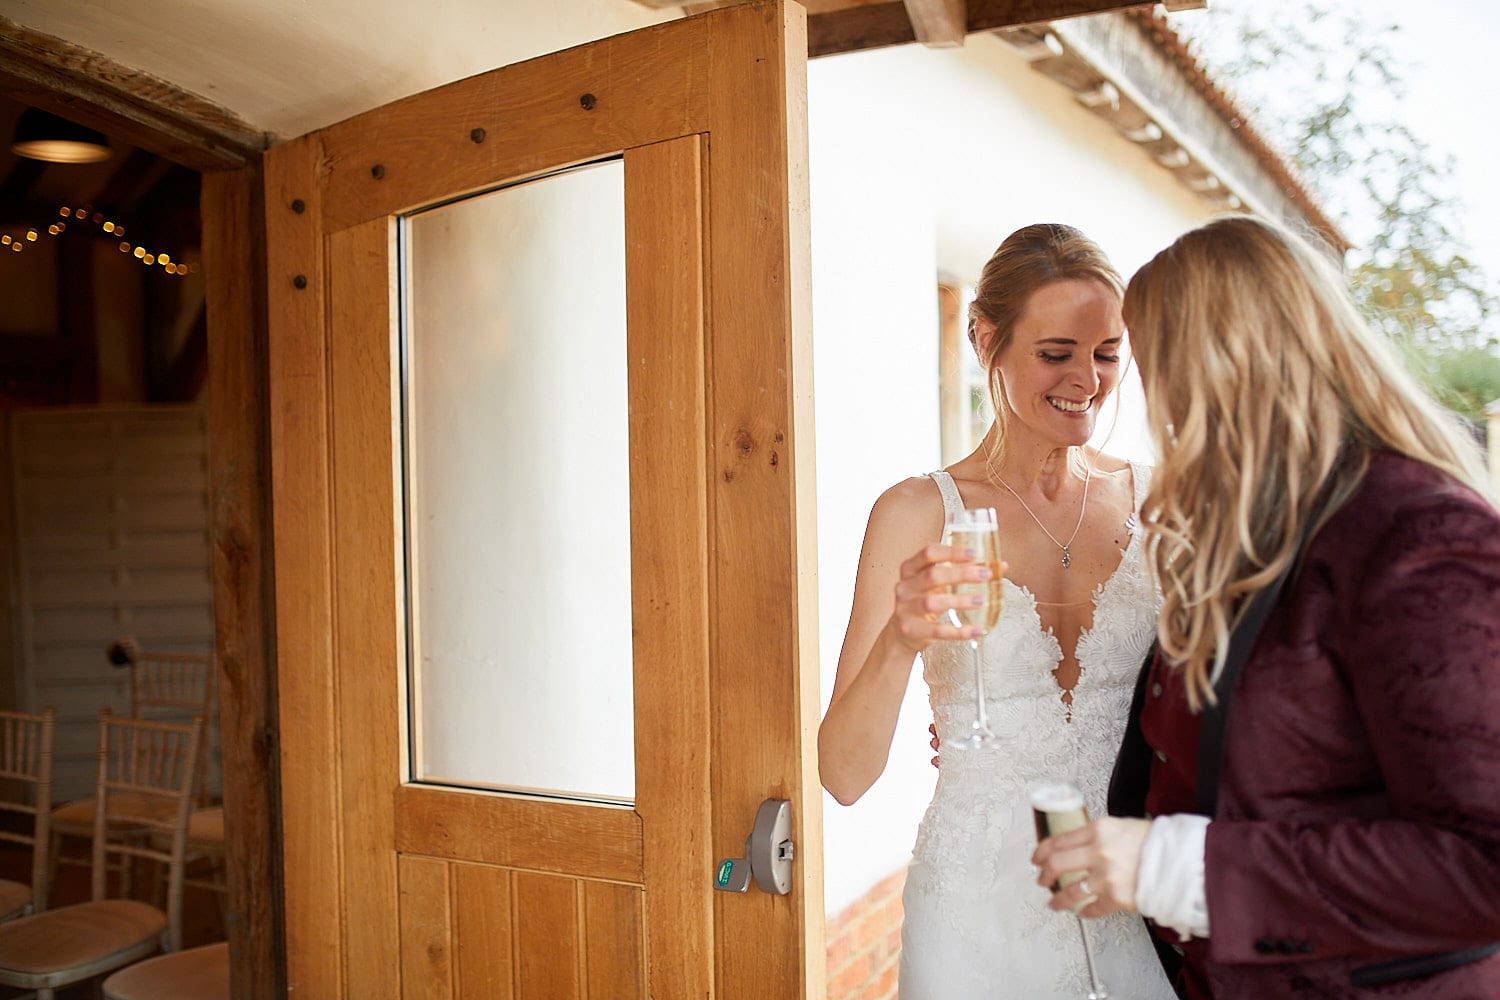 A same sex couple share a quiet moment on their wedding day